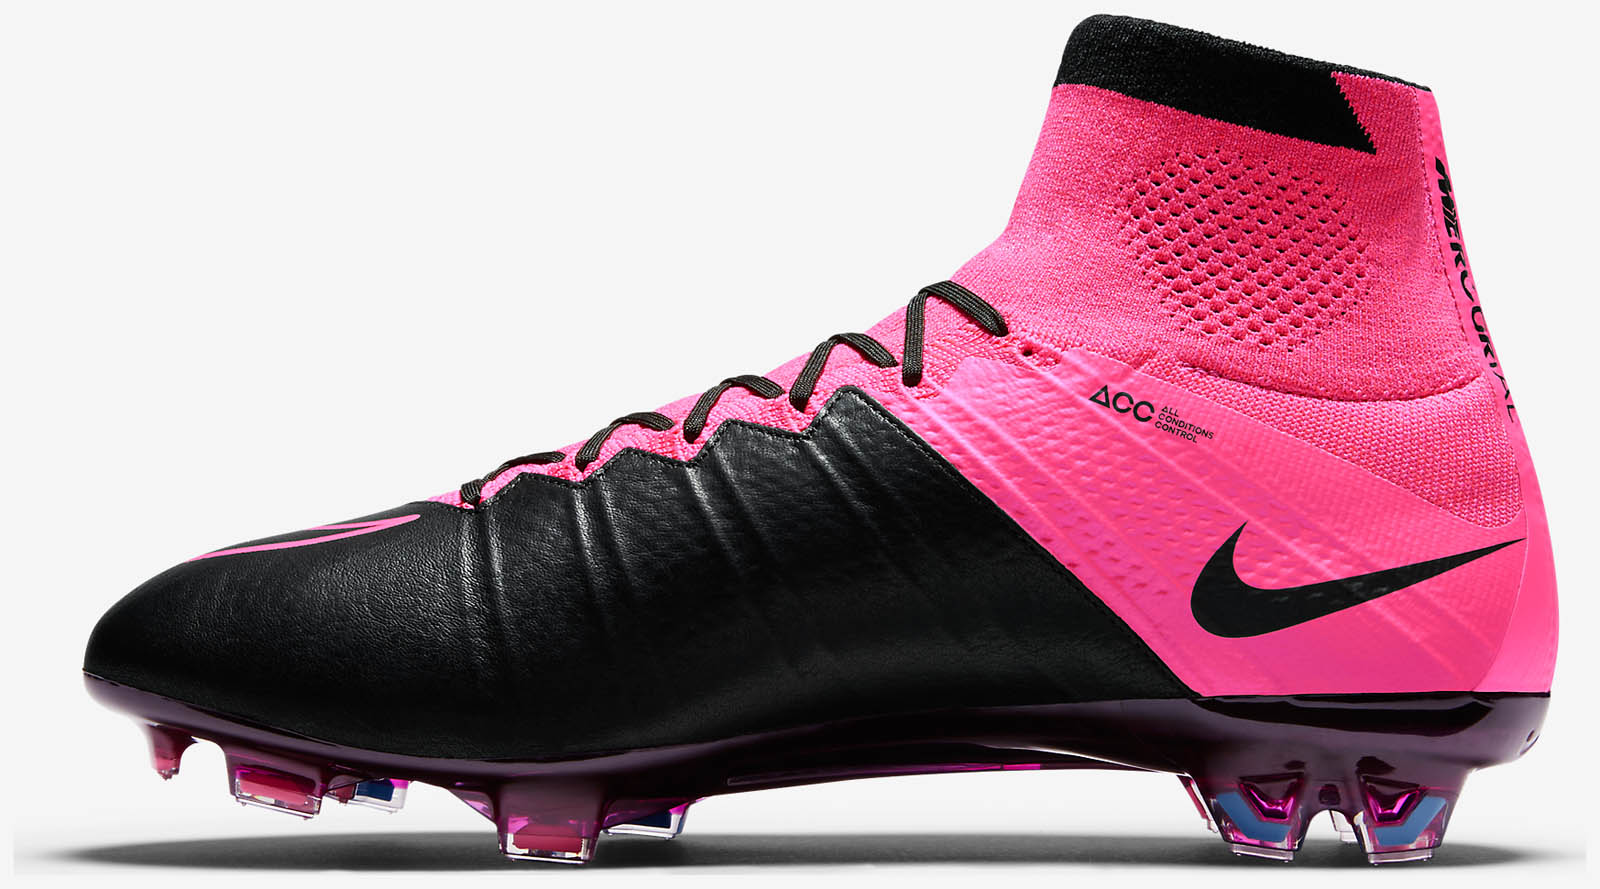 finest selection 7a4db b00a2 discount code for pink nike mercurial superfly cleats 359fa ...